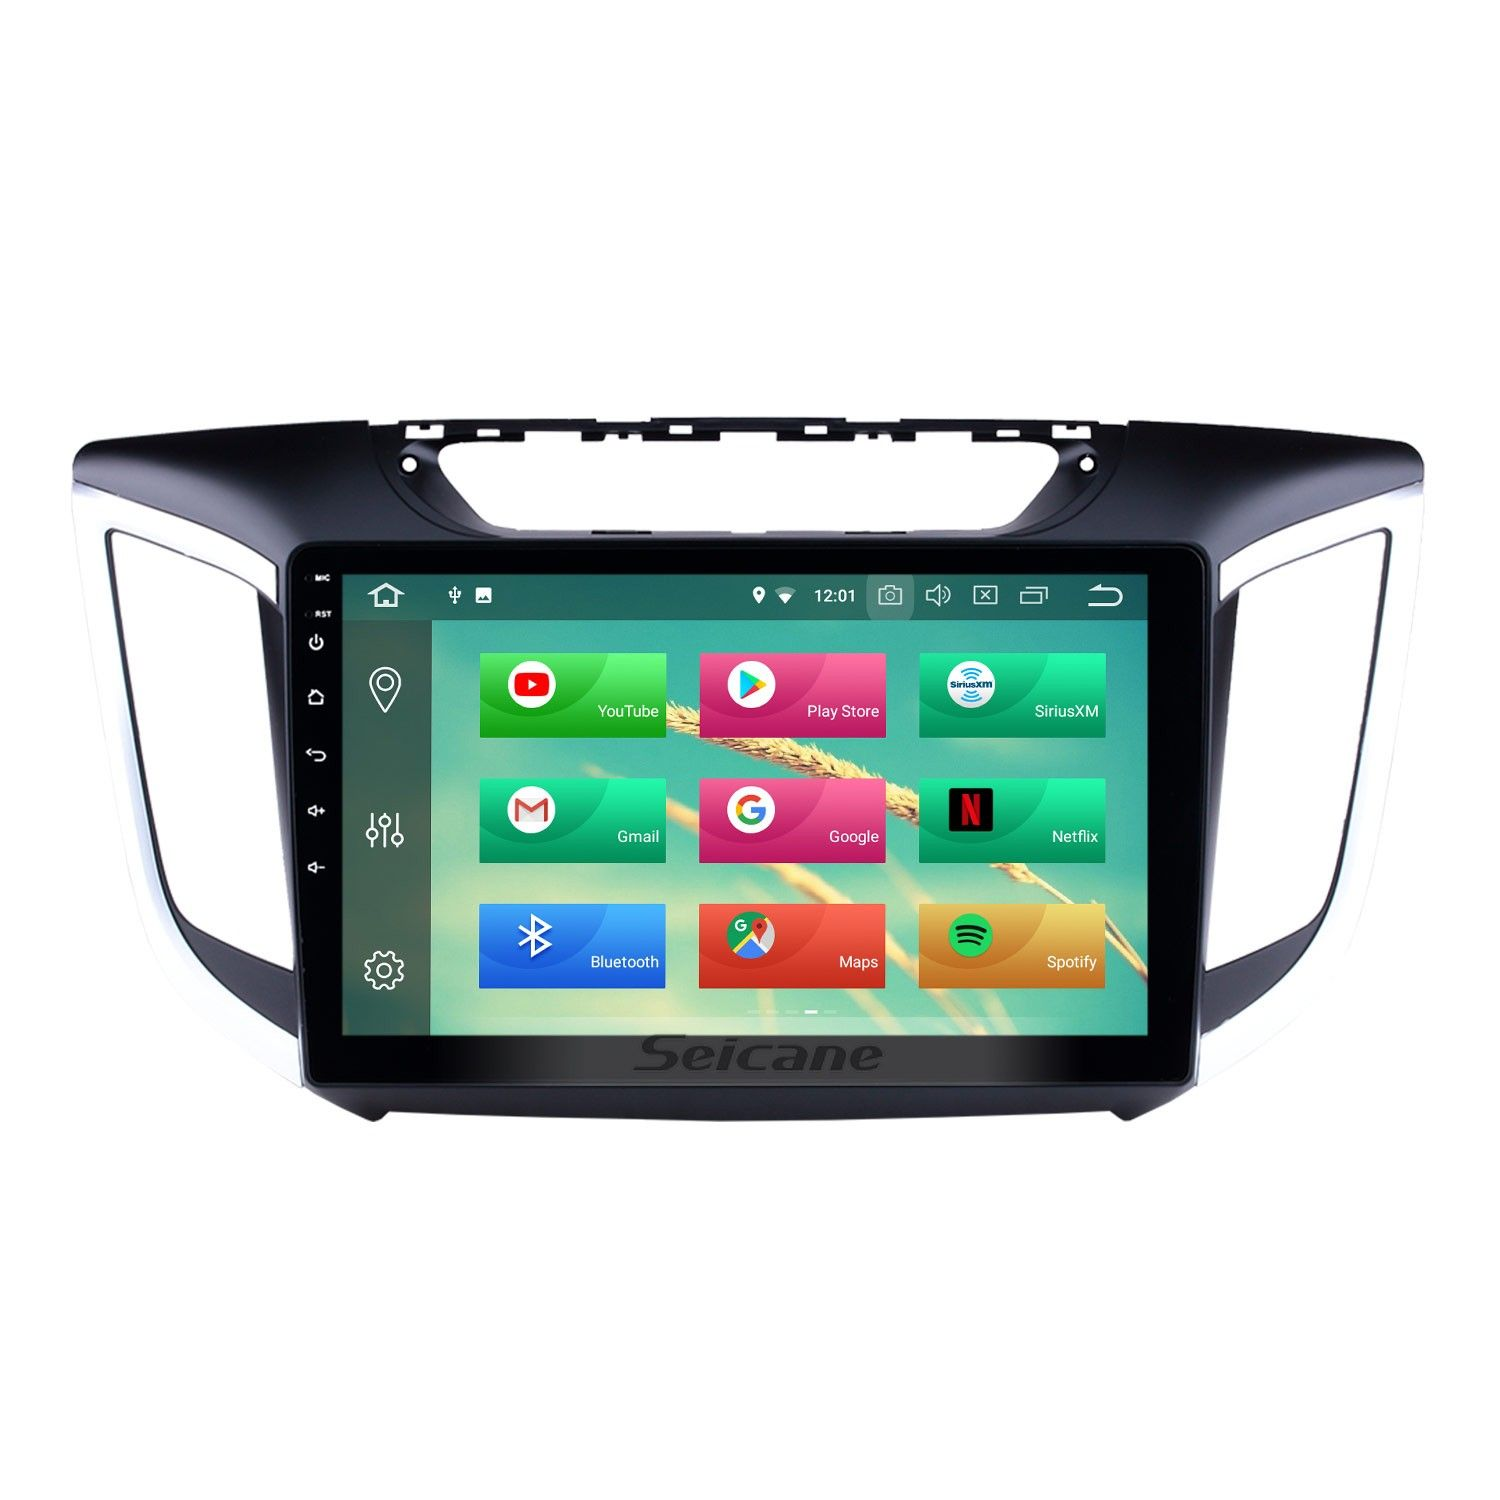 10 1 Inch Android 10 0 1024 600 Touchscreen Radio For 2014 2015 Hyundai Ix25 Creta With Bluetooth Gps Navigation 4g Wifi Steering Wheel Control Obd2 Mirror Link Gps Navigation Gps Android Car Stereo